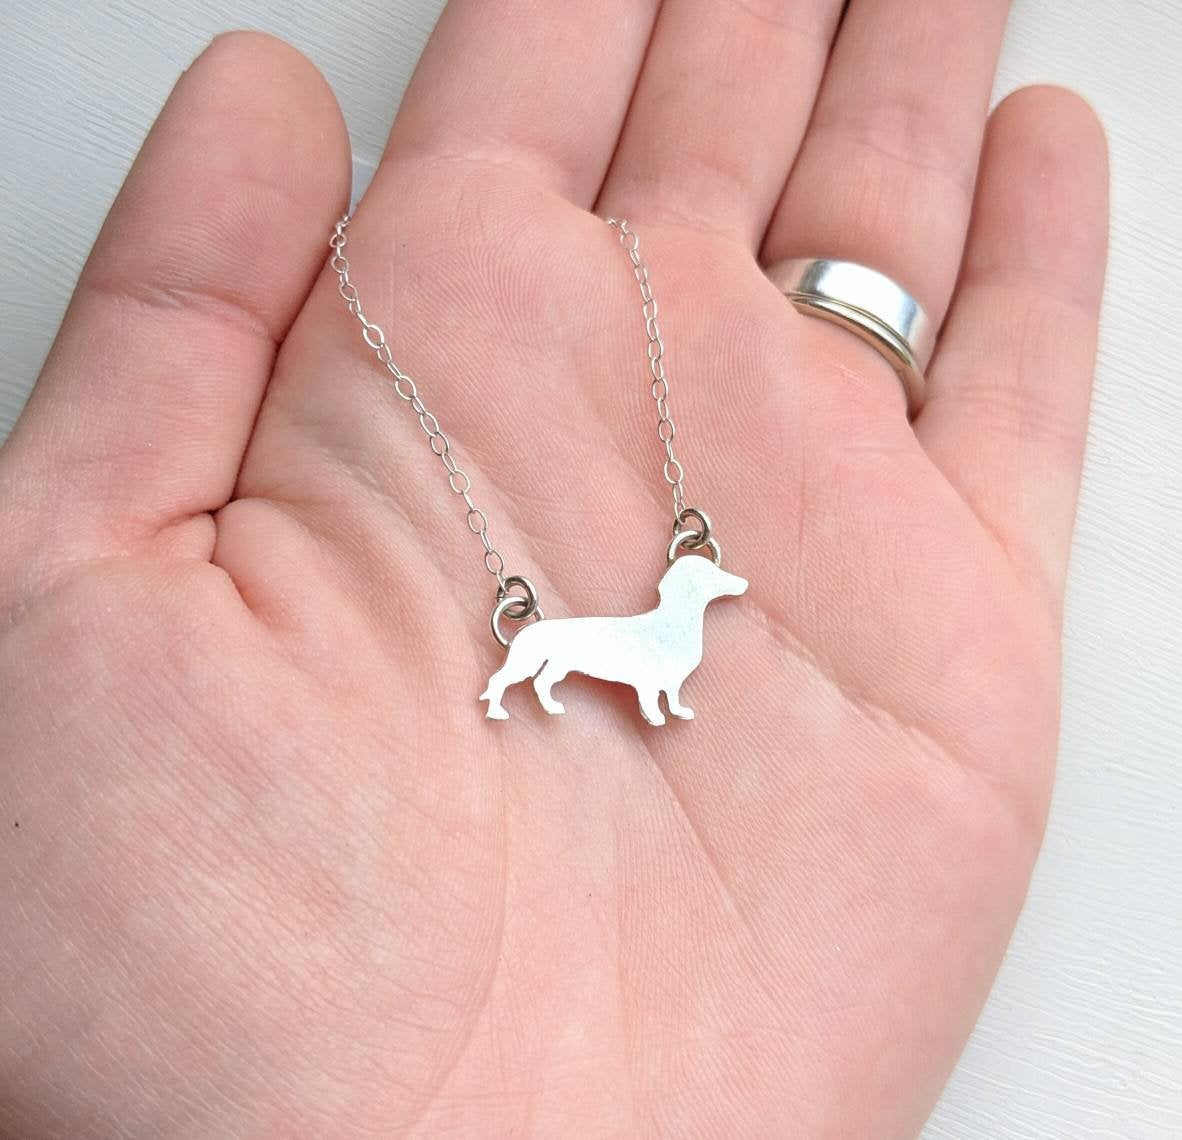 Sterling silver dachshund necklace handmade by An American Metalsmith